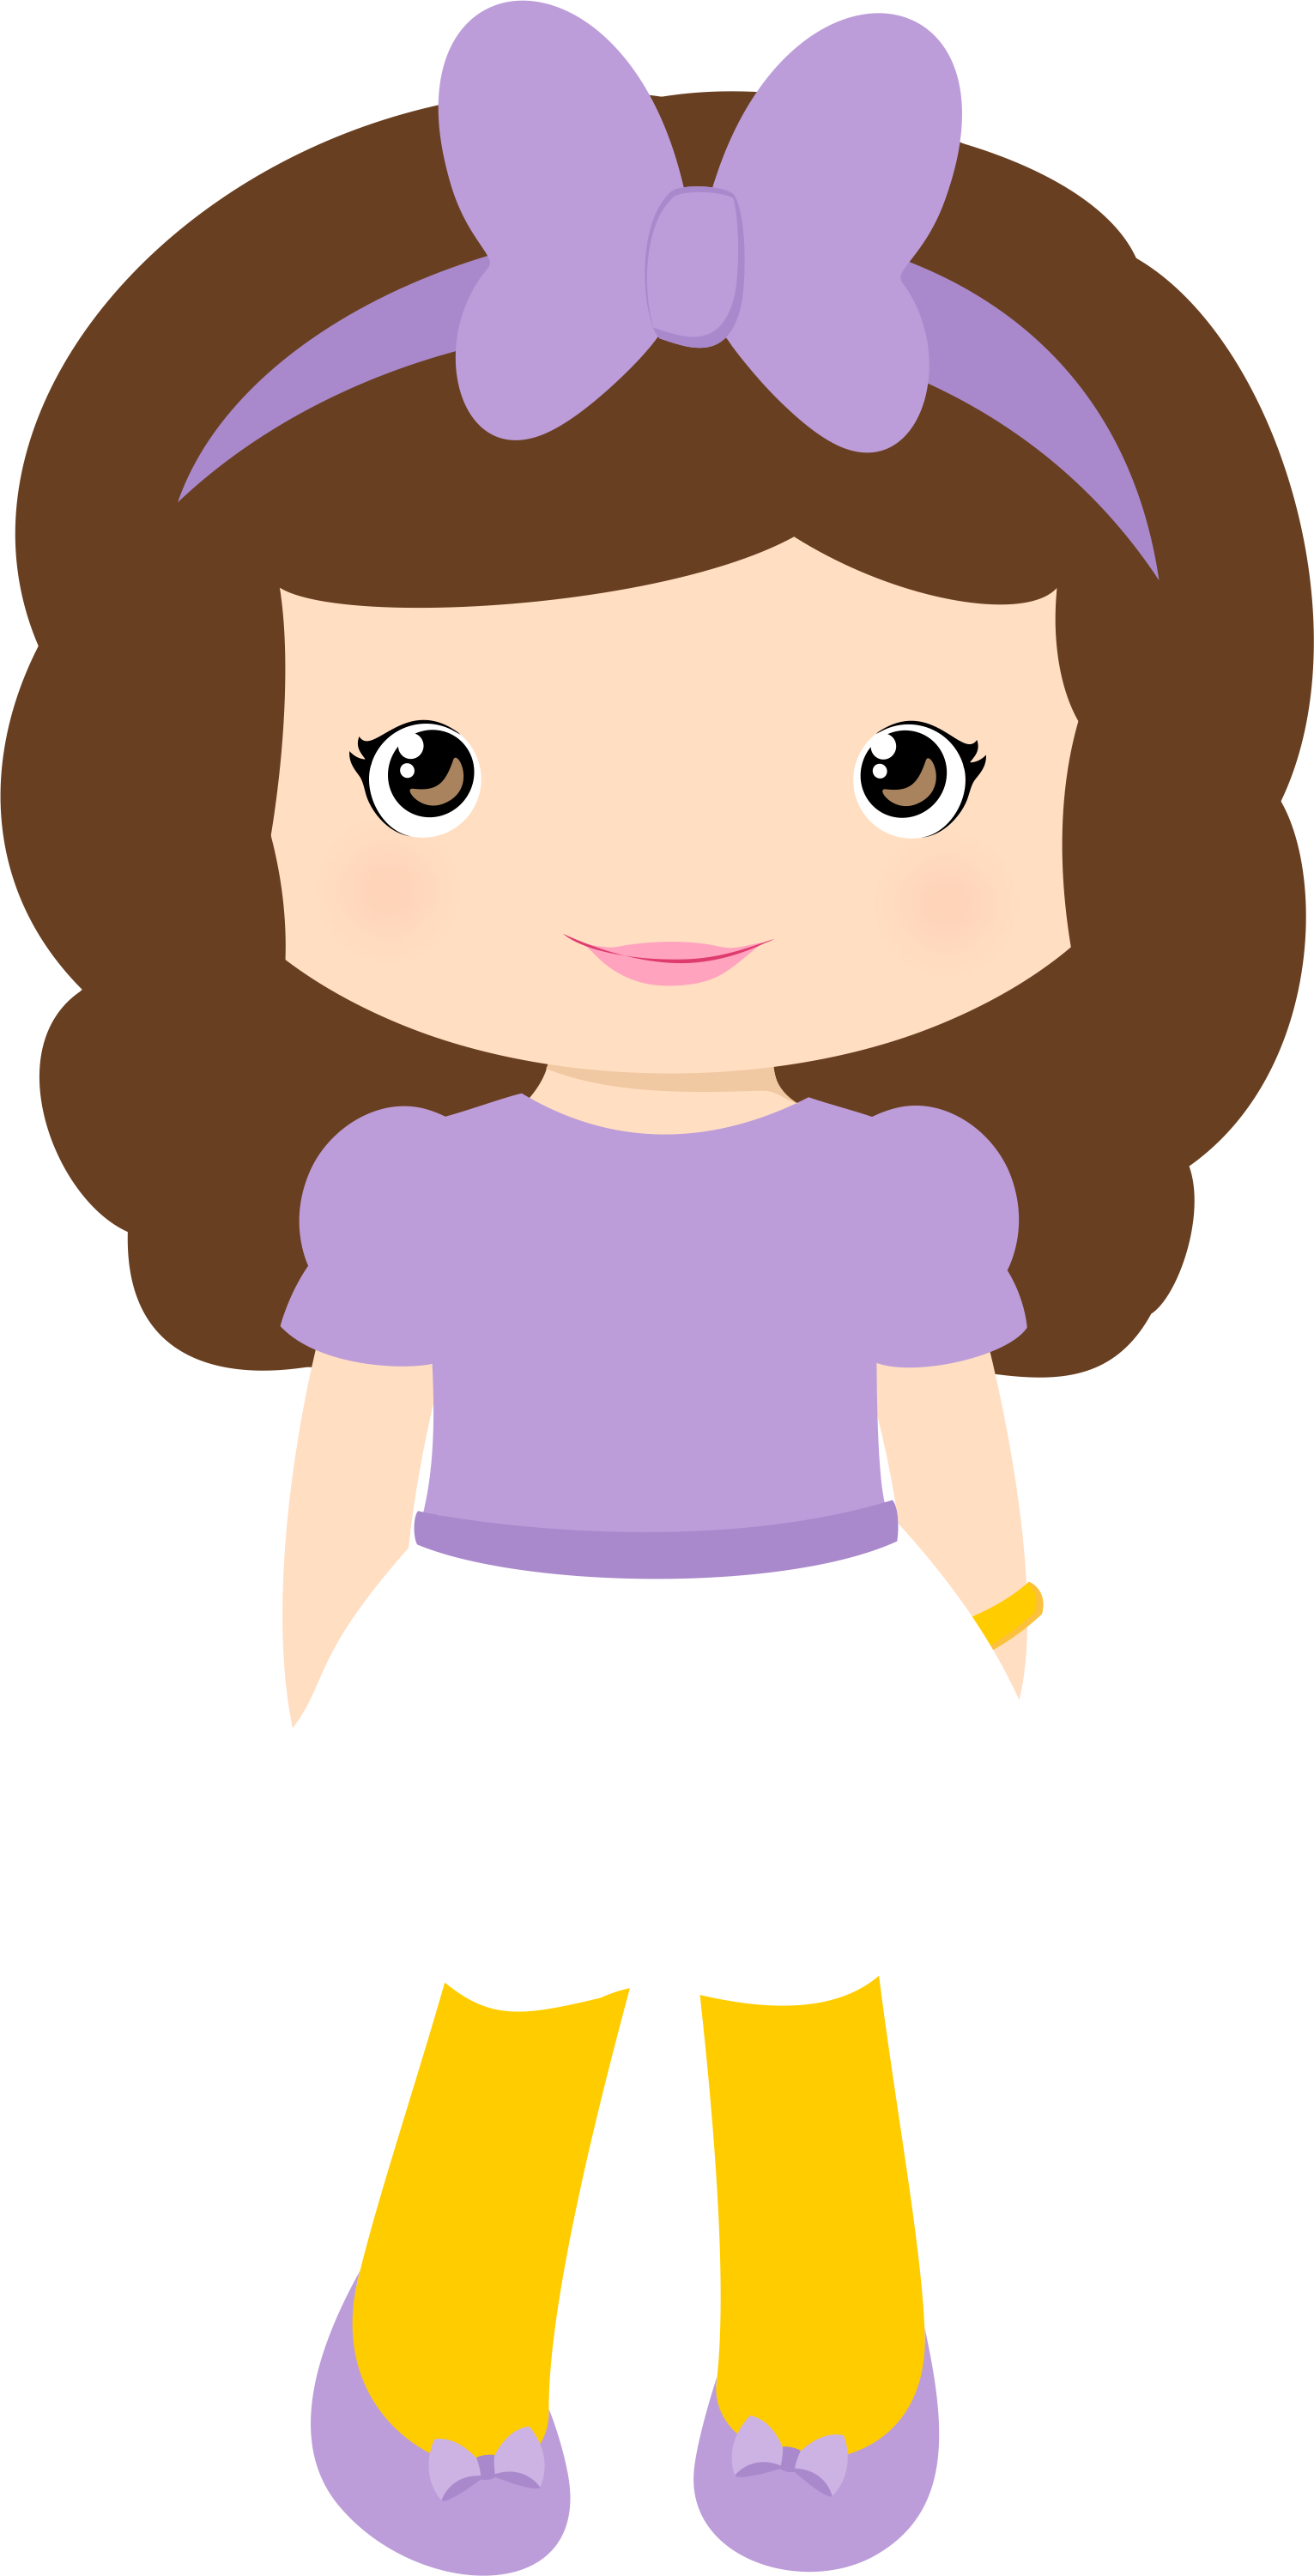 Ibohofklgpgwle png scrapbooking ideas. Girls clipart purple